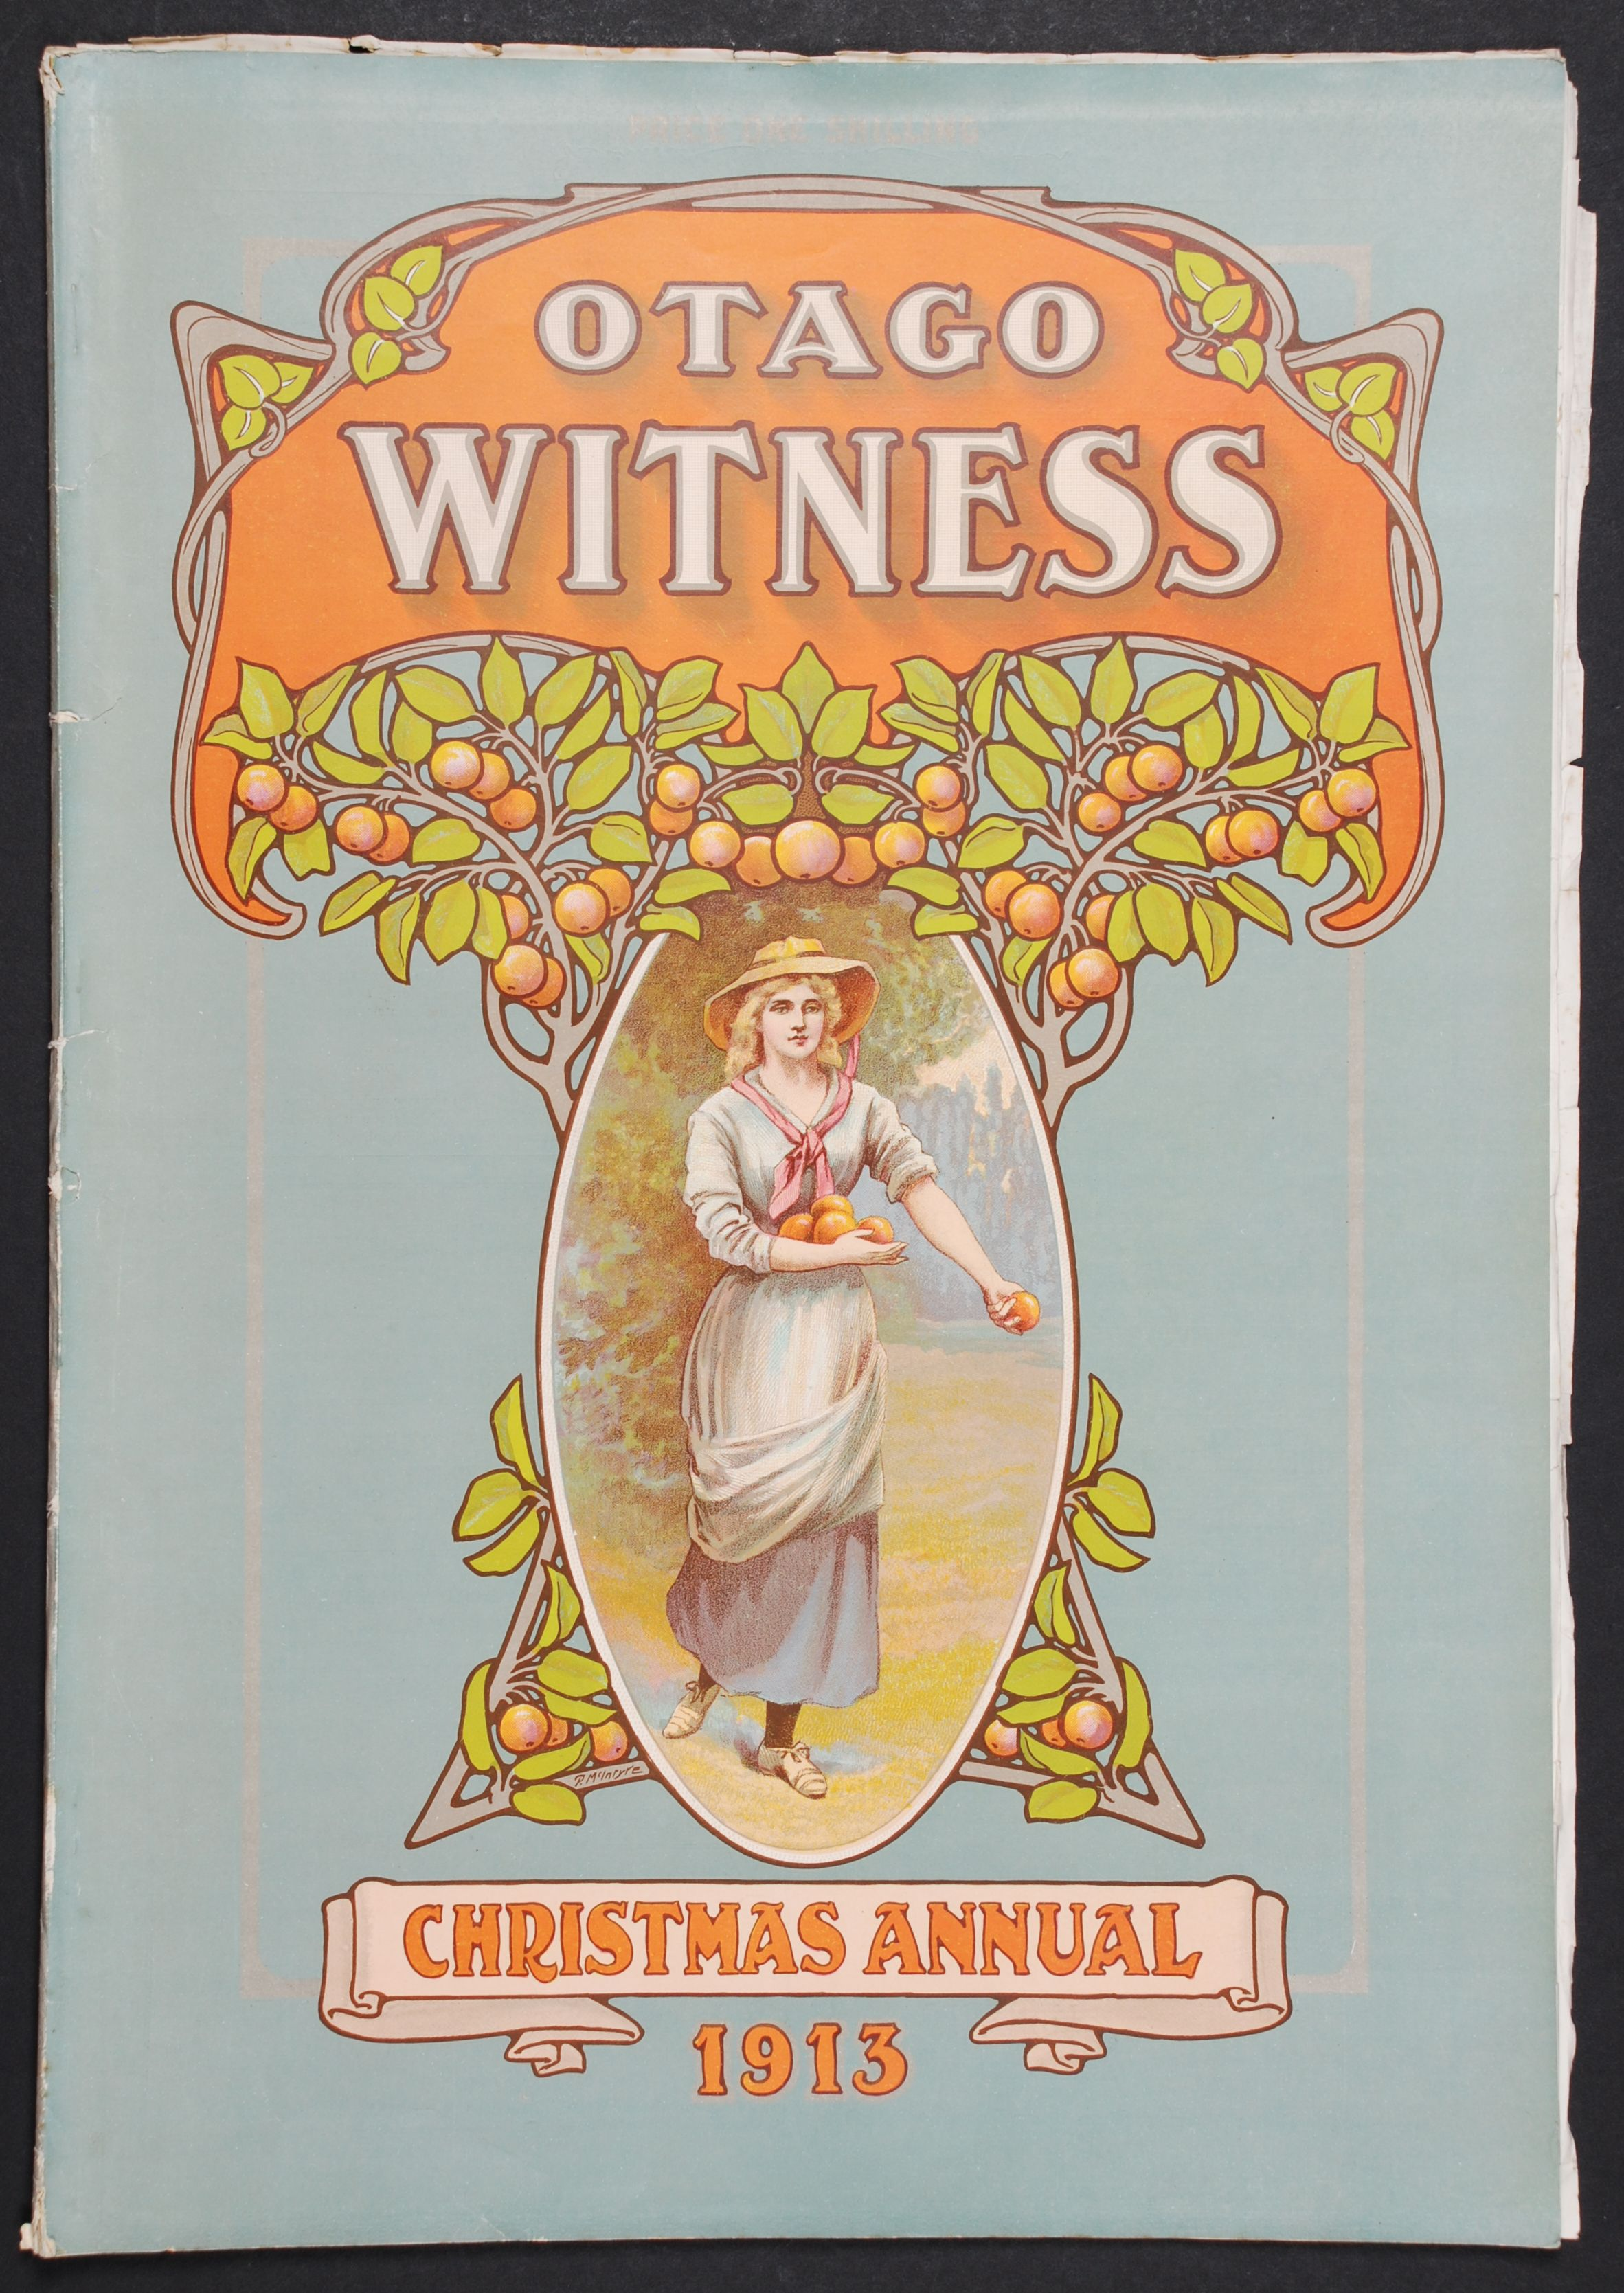 The Otago Witness. Christmas Annual, 1913.